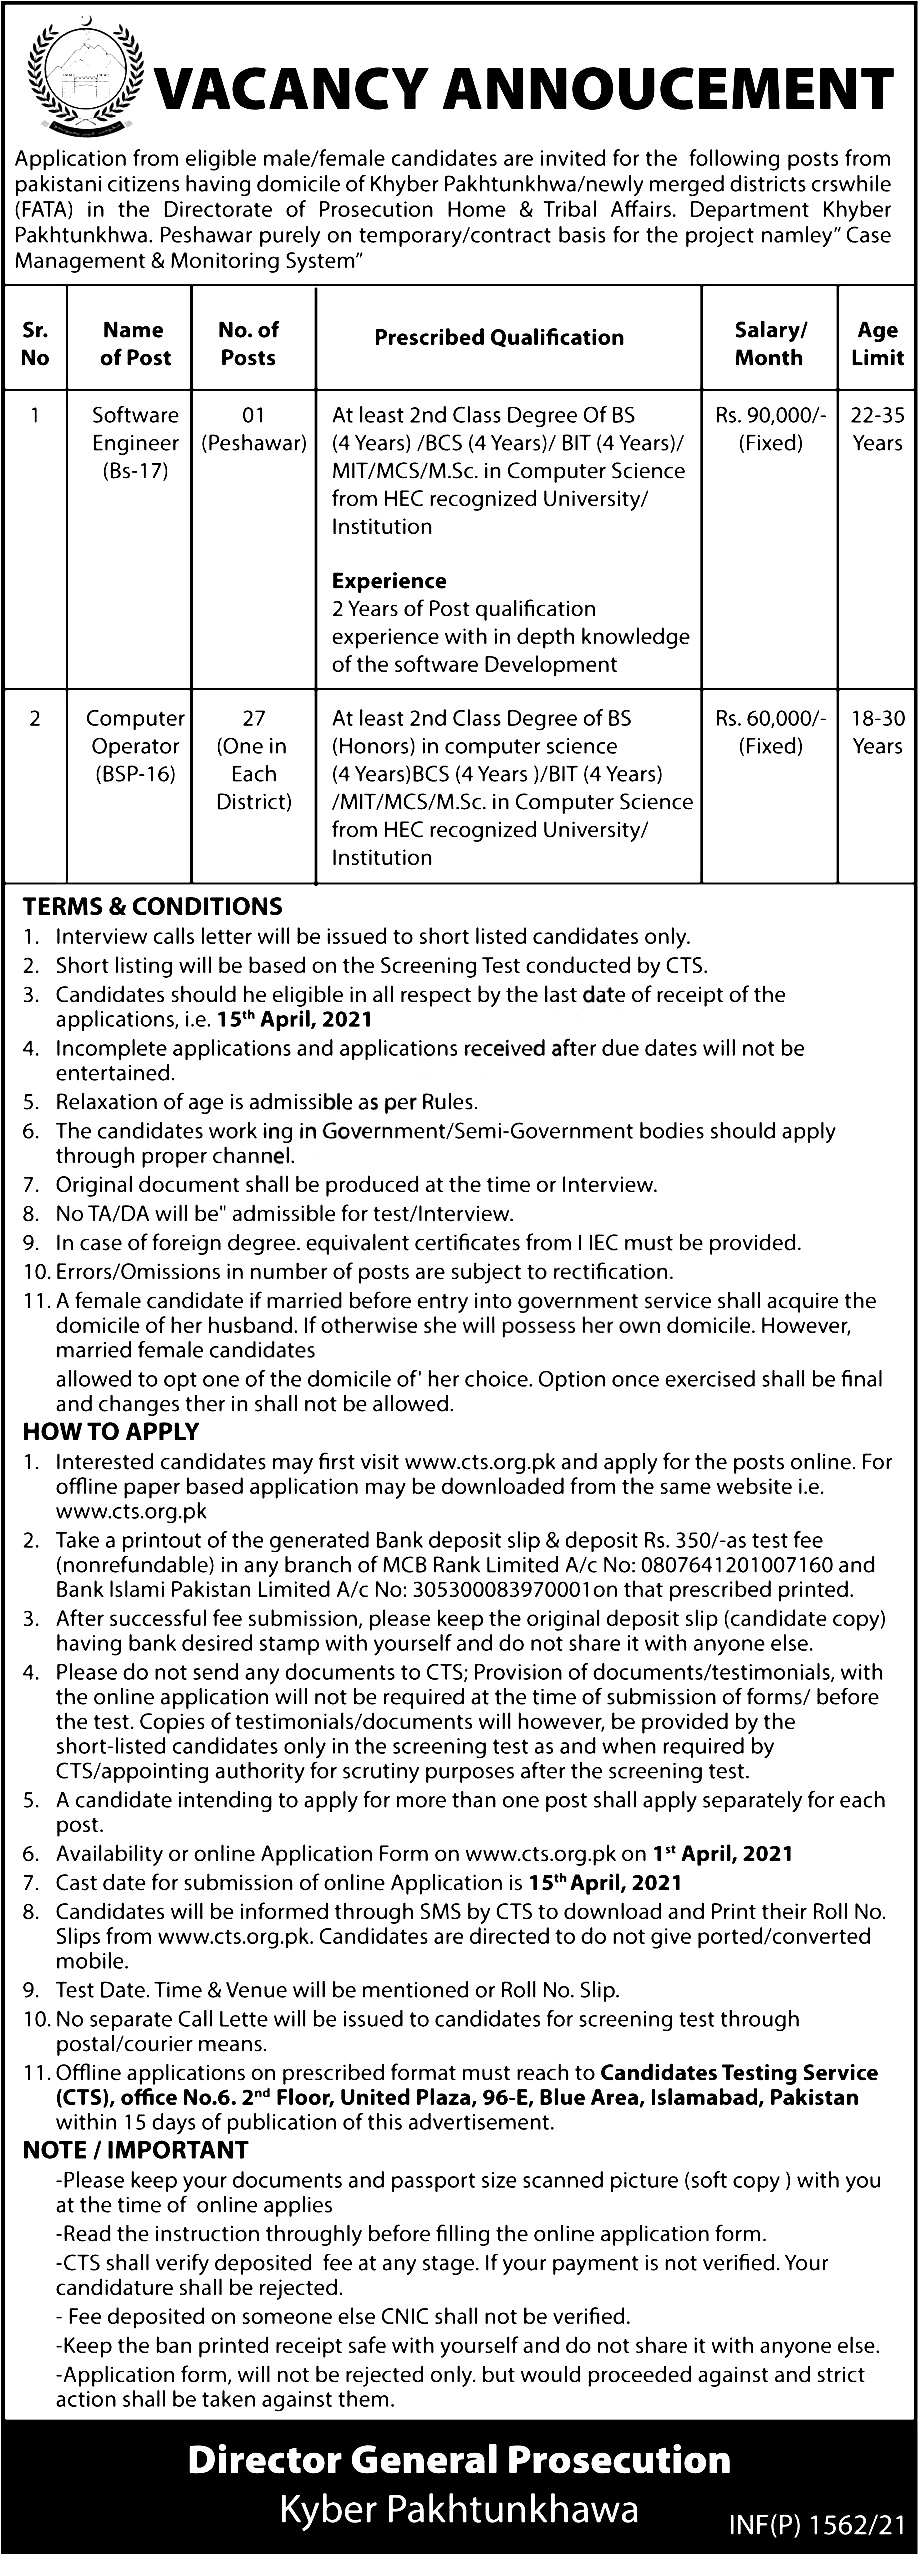 Home and Tribal Affairs Department KPK CTS Jobs 2021 Application Form Roll No Slip Download Online